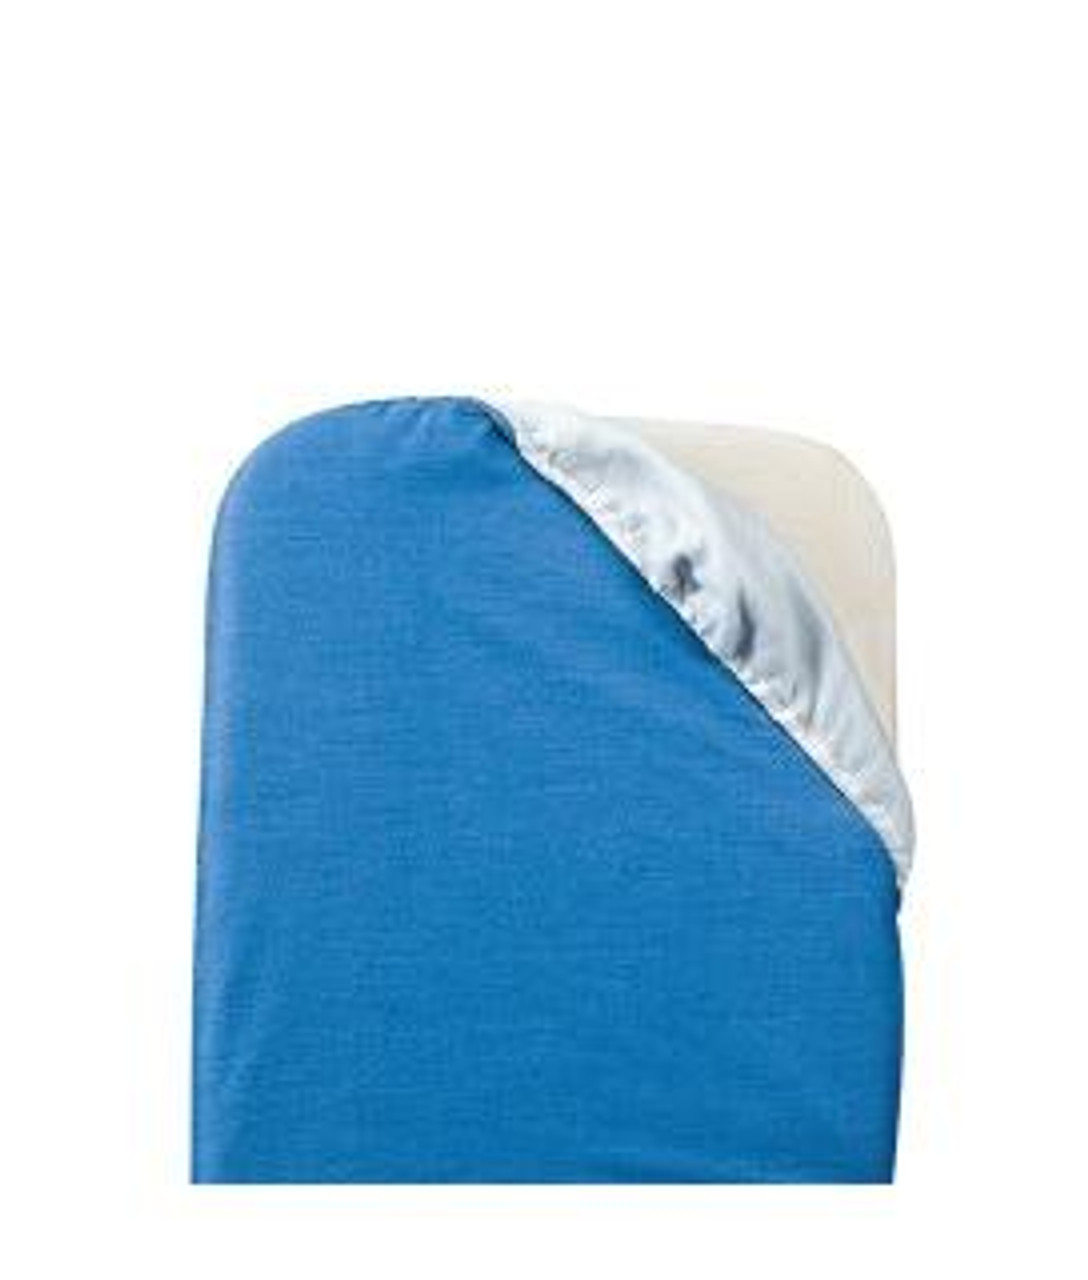 HOSPITALITY 1 SOURCE HOSPITALITY 1 SOURCE or THE UNIVERSAL or REPLACEMENT BUNGEE ELASTIC or IRONING BOARDS and COVERS